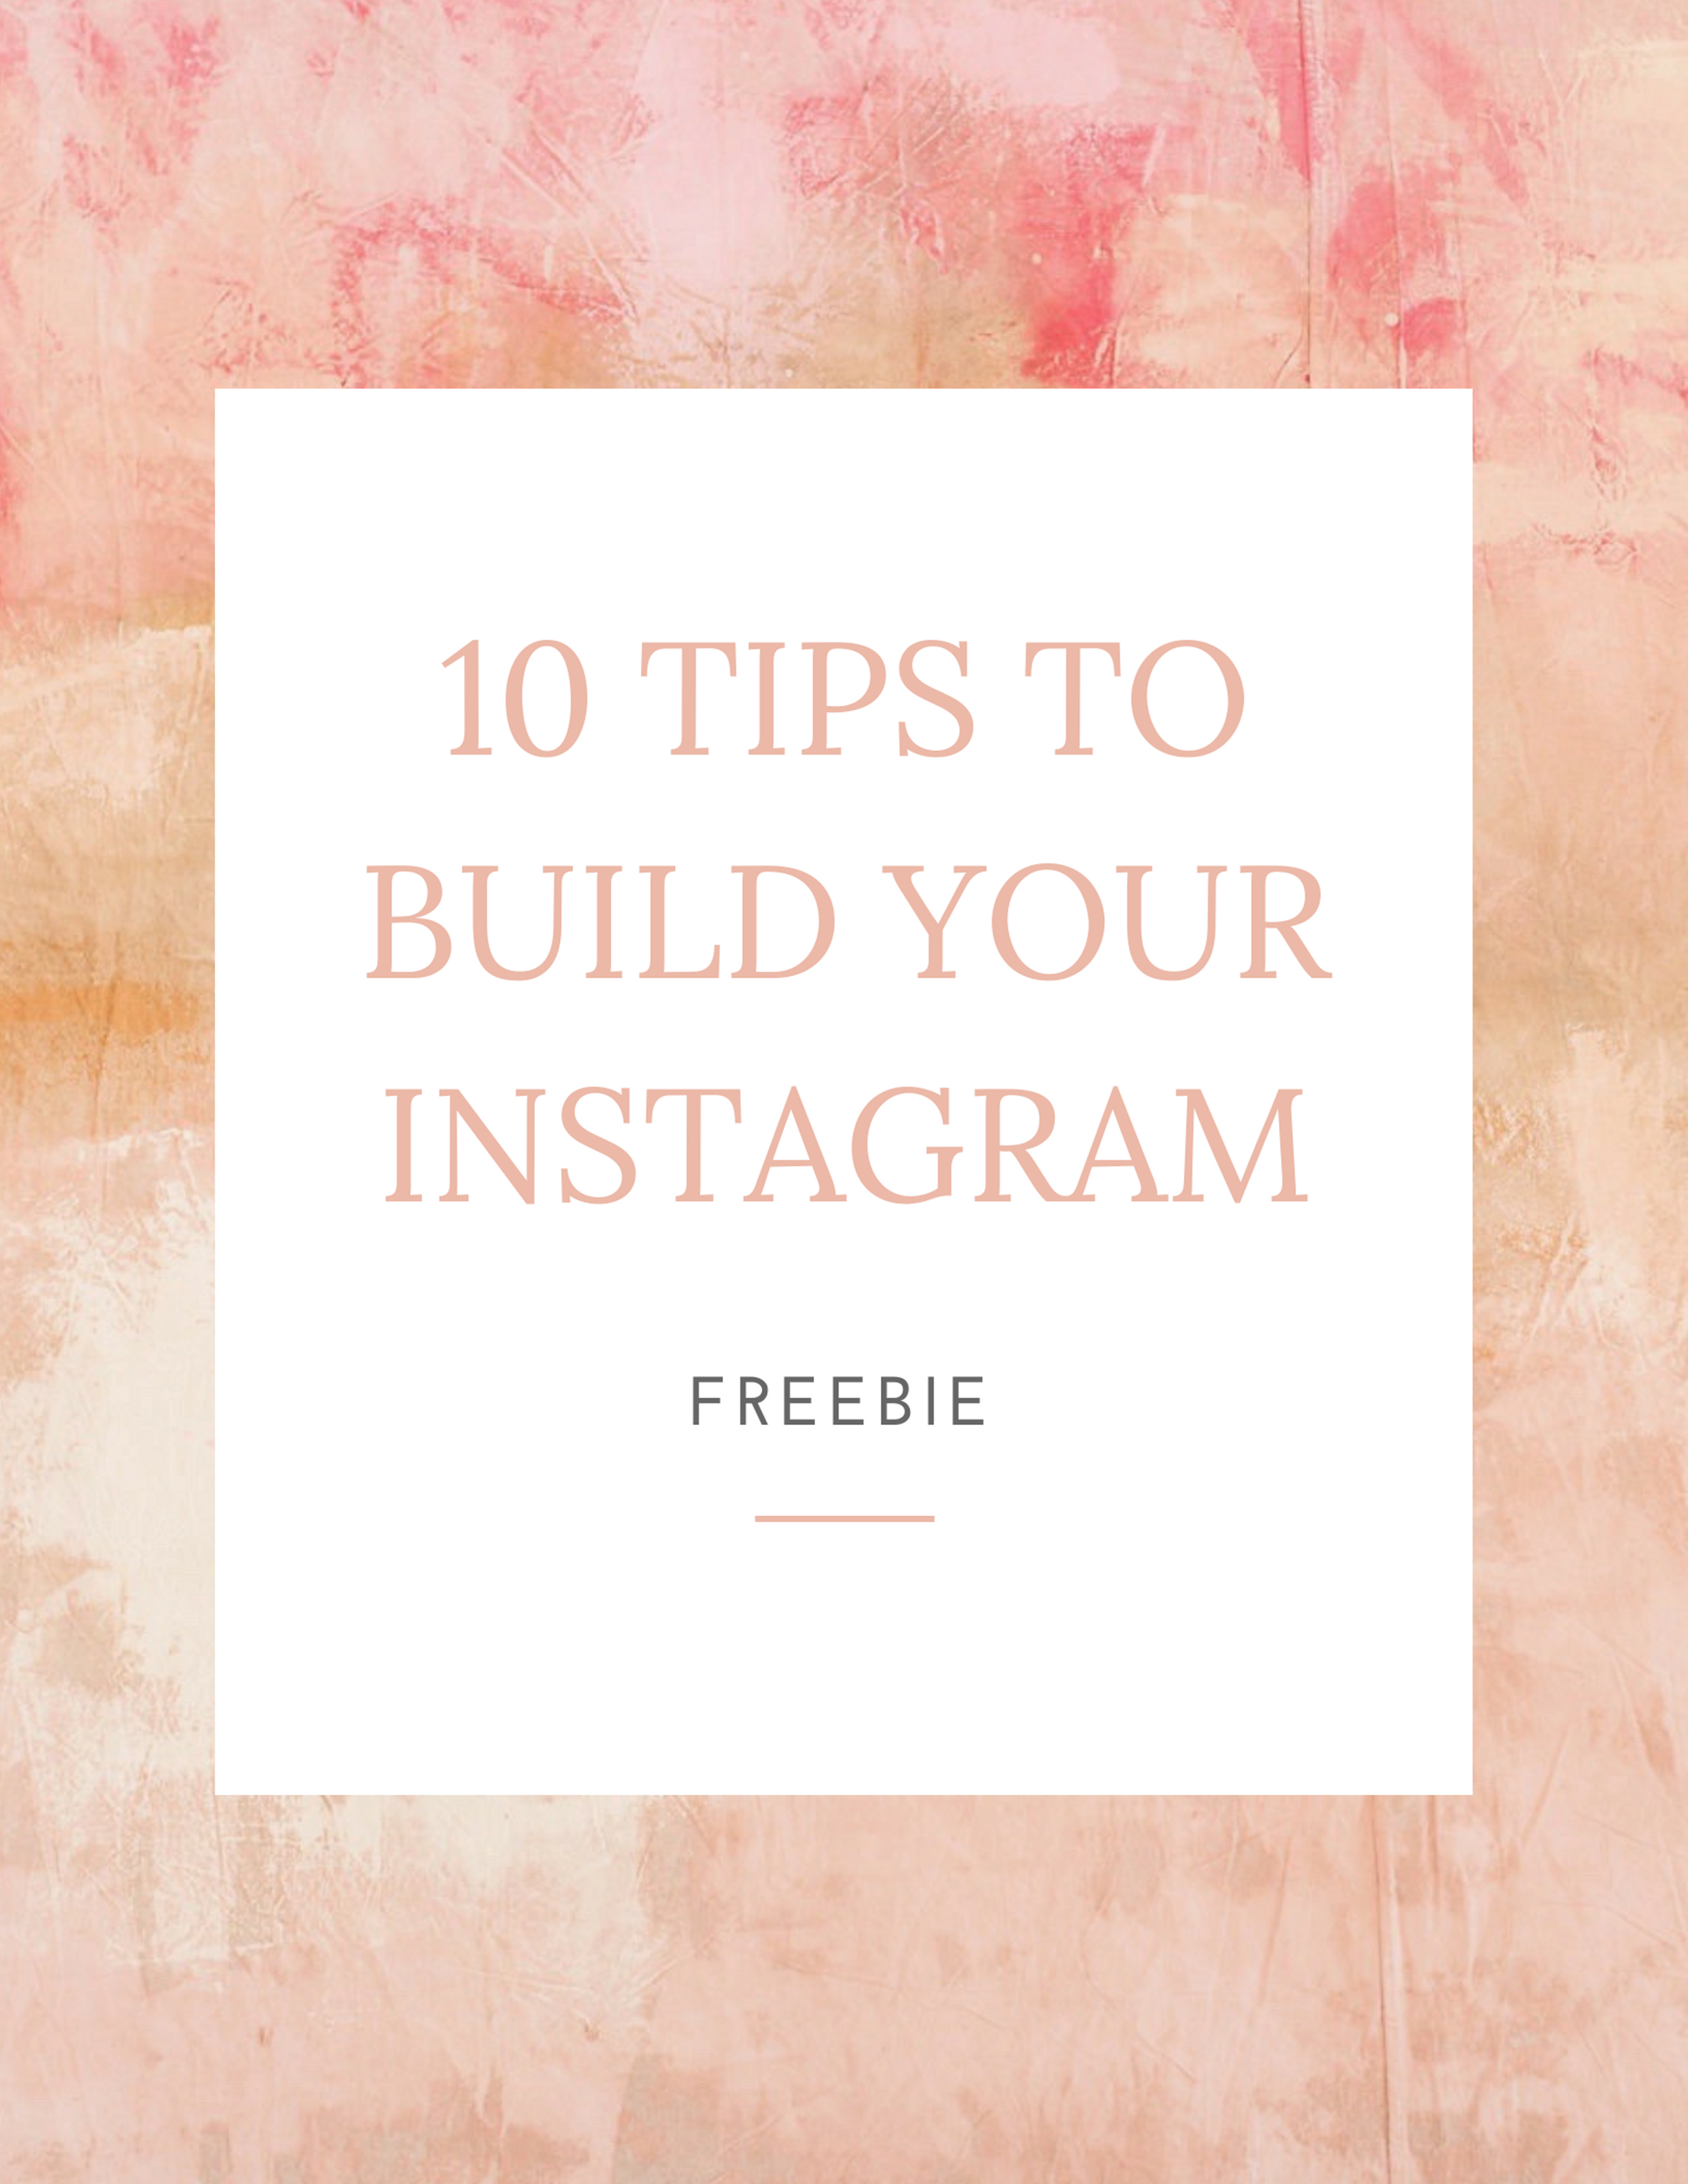 10 INSTAGRAM TIPS FREEBIE.png